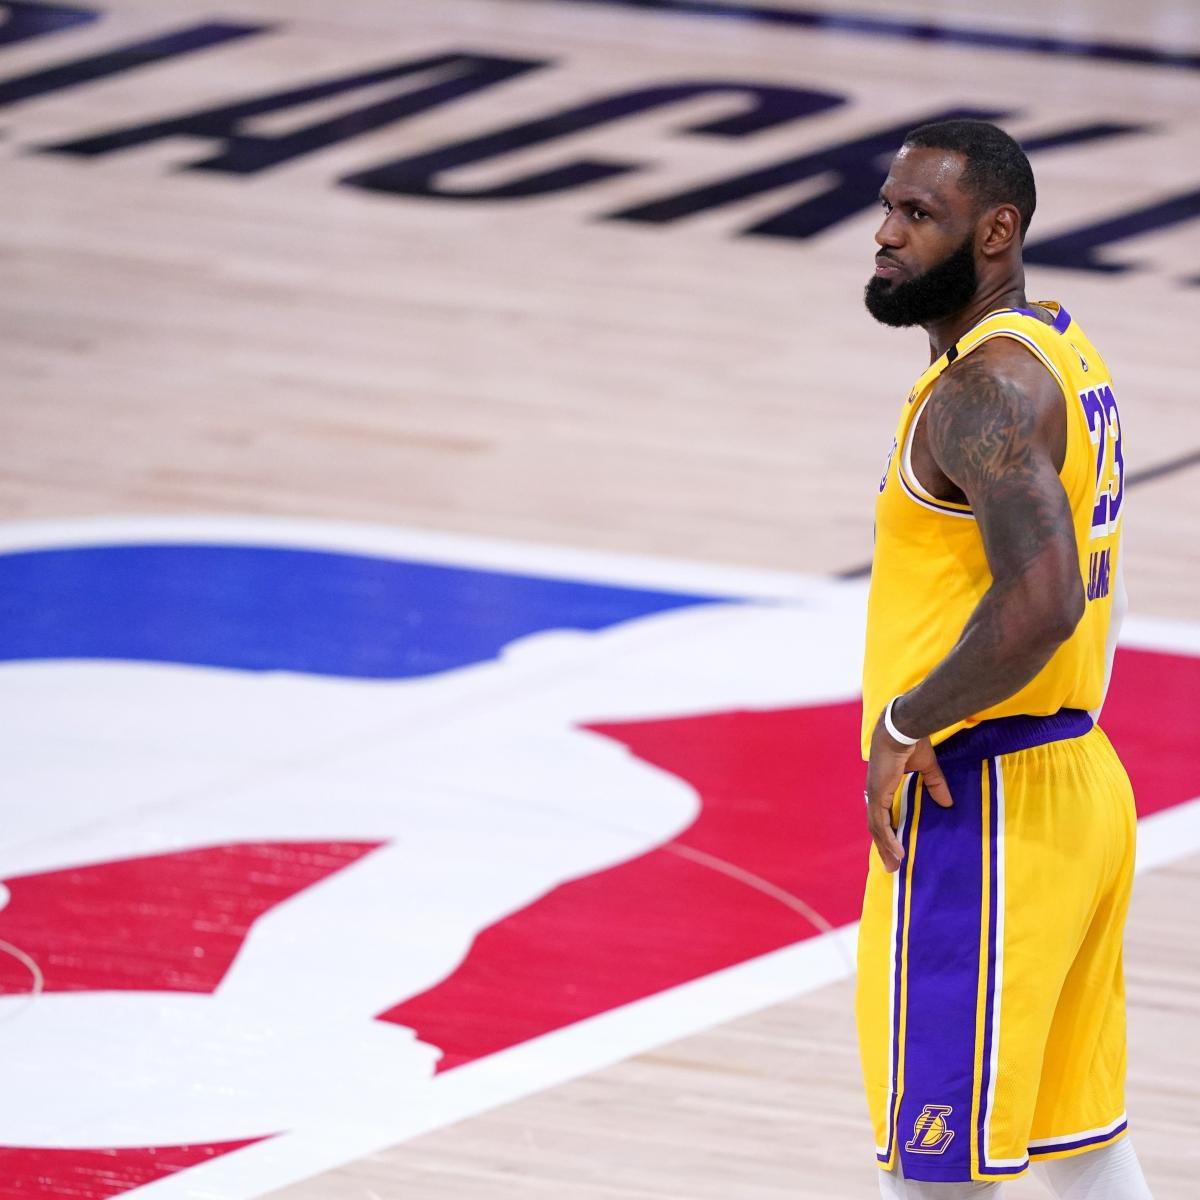 Lakers' LeBron James 'Devastated' by Grand Jury Decision in Breonna Taylor Case thumbnail